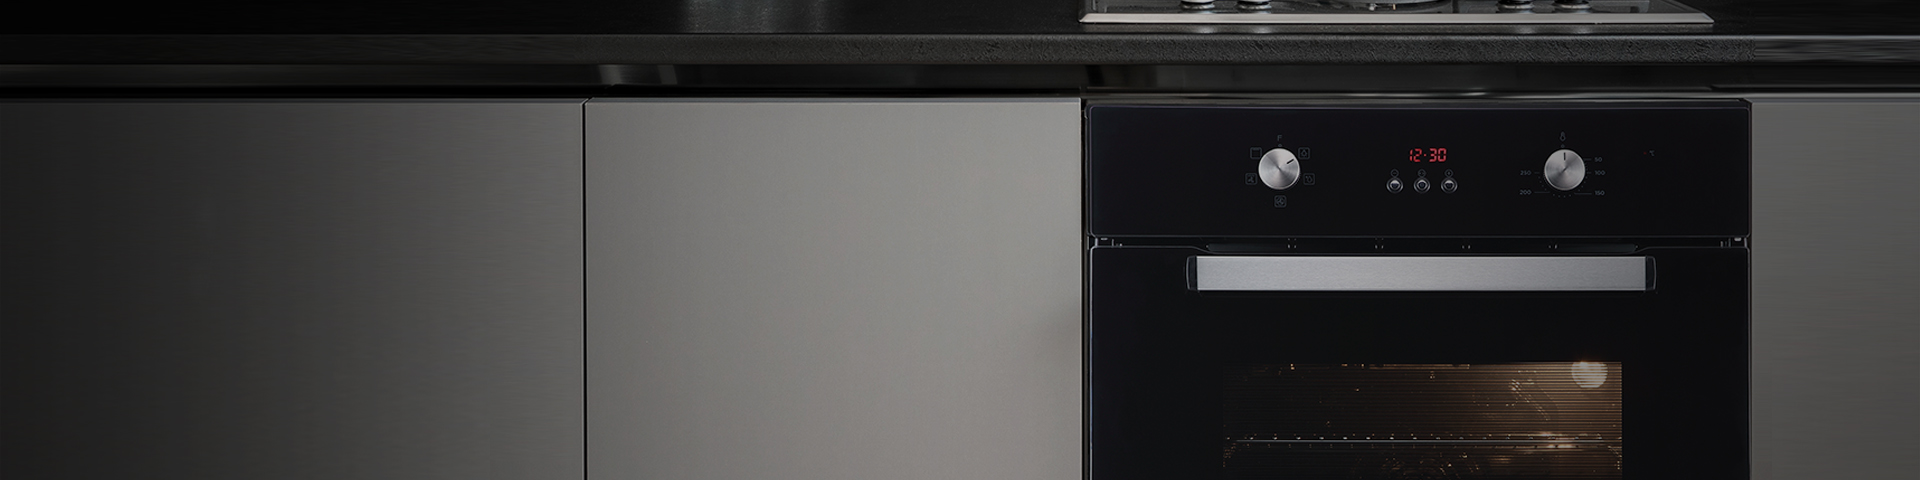 80L Electric Oven